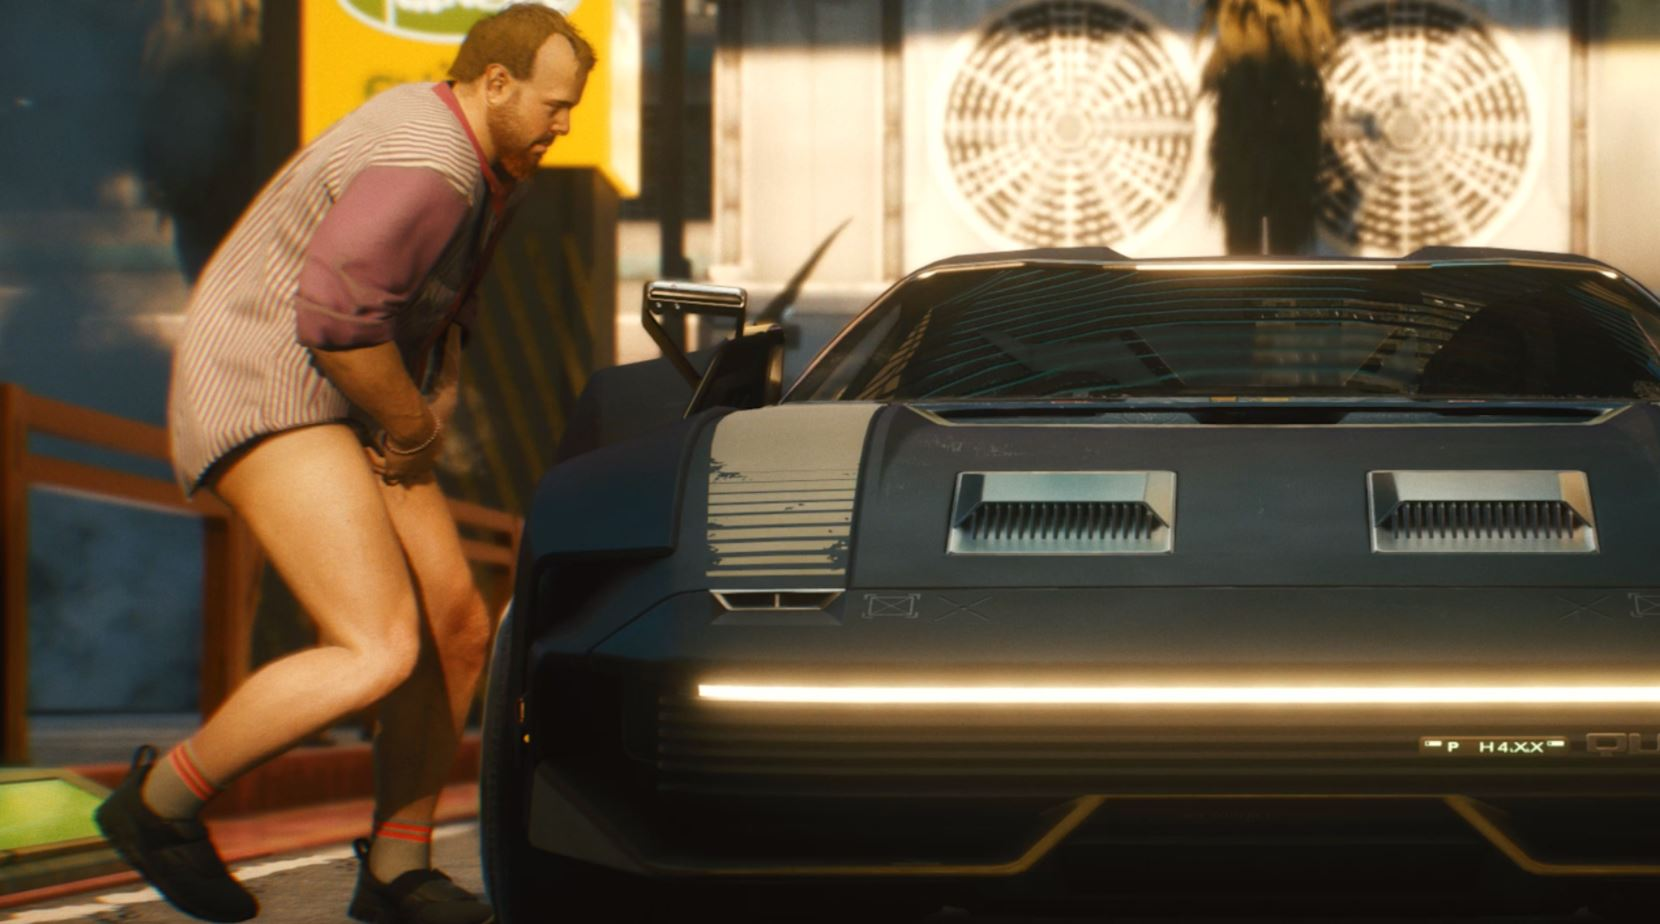 cyberpunk-2077-early-ps5-ps4-hands-on-impressions-grand-theft-auto-on-steroids-an-engrossing-world-with-horrific-ps4-performance-5